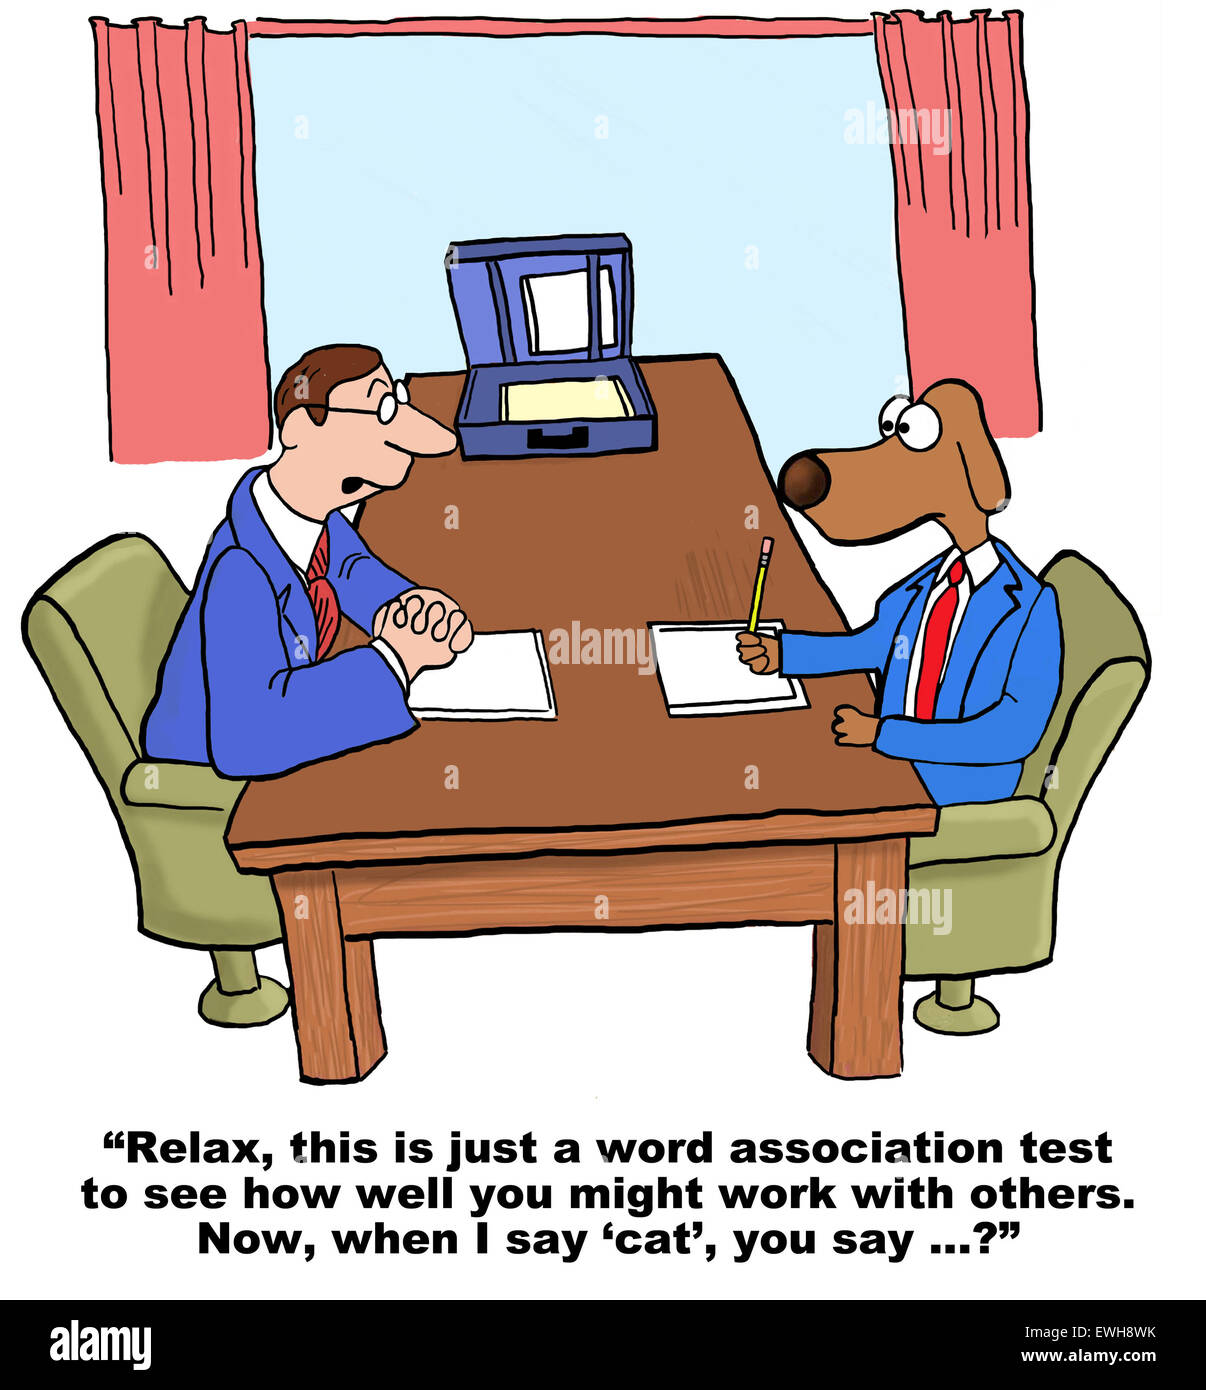 Business cartoon of personality test for employment, '... to see how well you work with others, when I say 'cat', - Stock Image